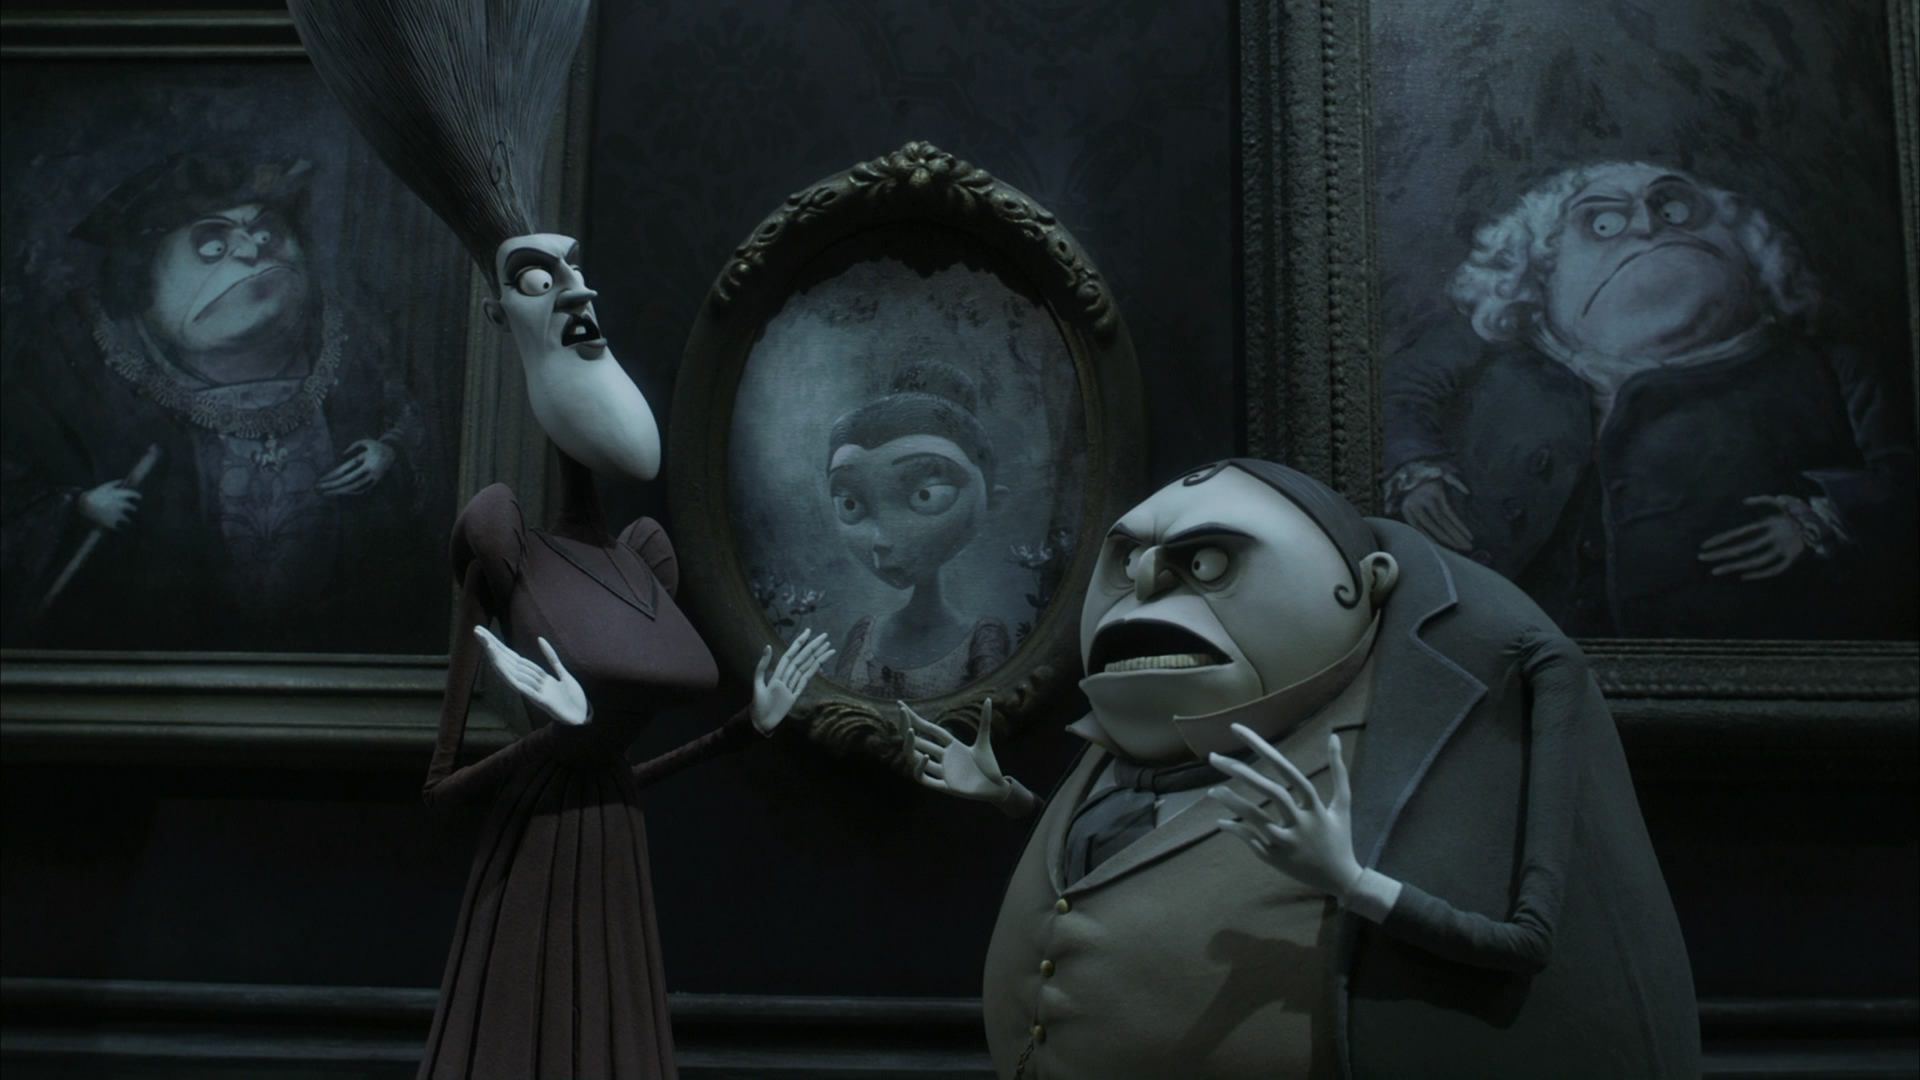 corpse-bride-movie_73185-1920x1080